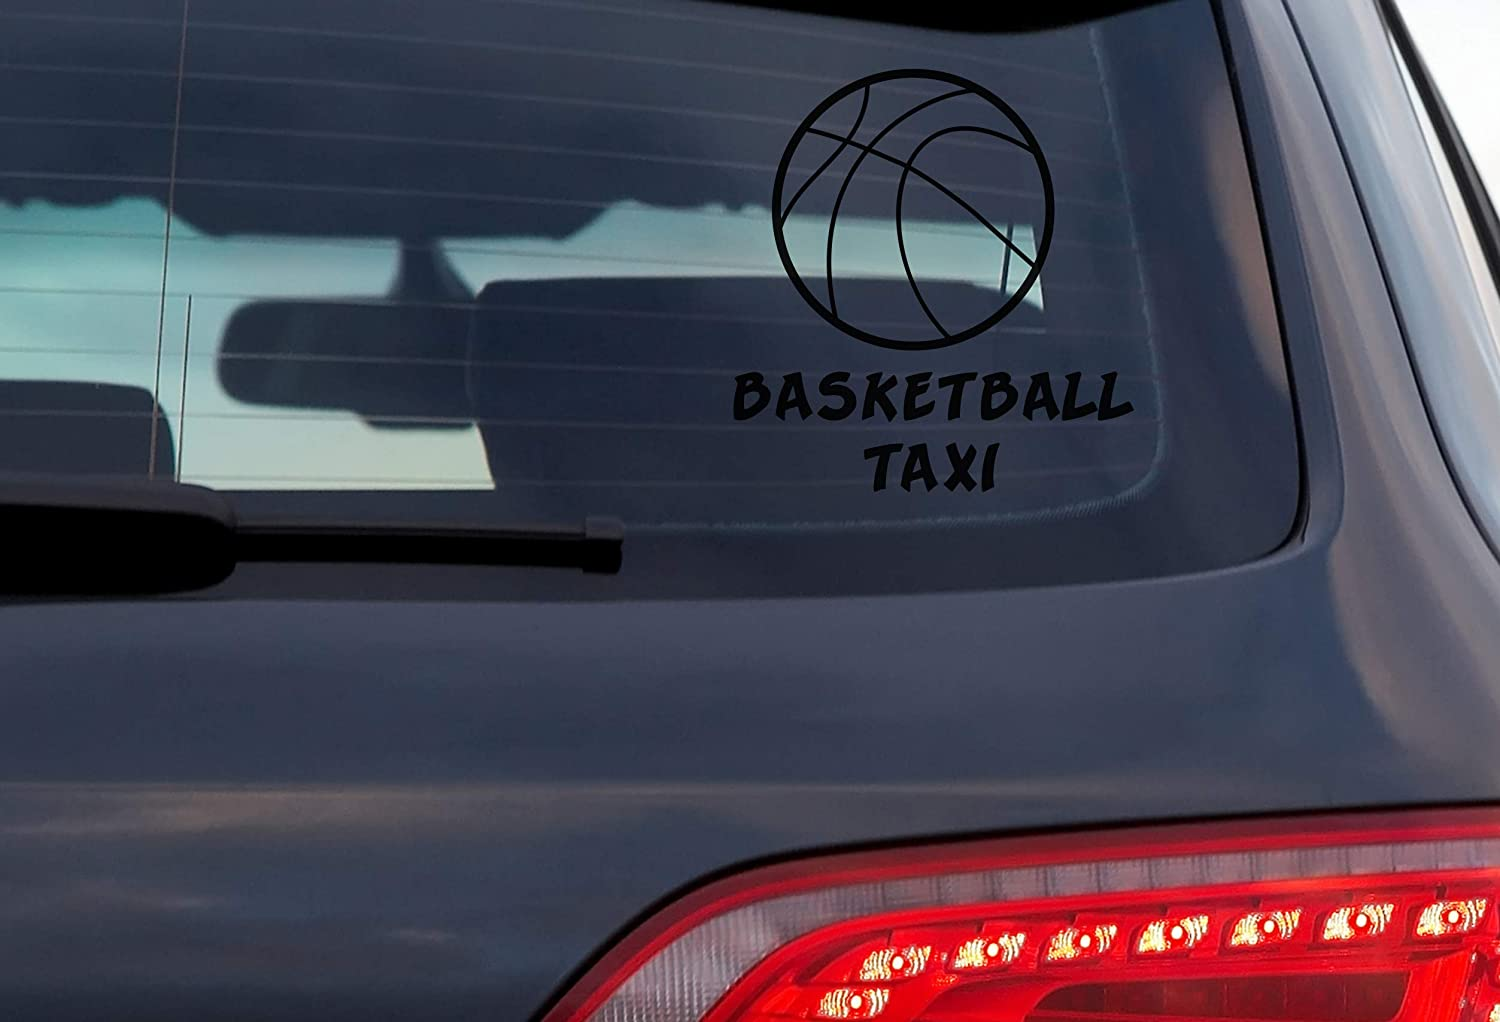 DOOMSDAYDECALS Basketball Taxi Exterior 4 Inch Black Vinyl Decal for Car Window